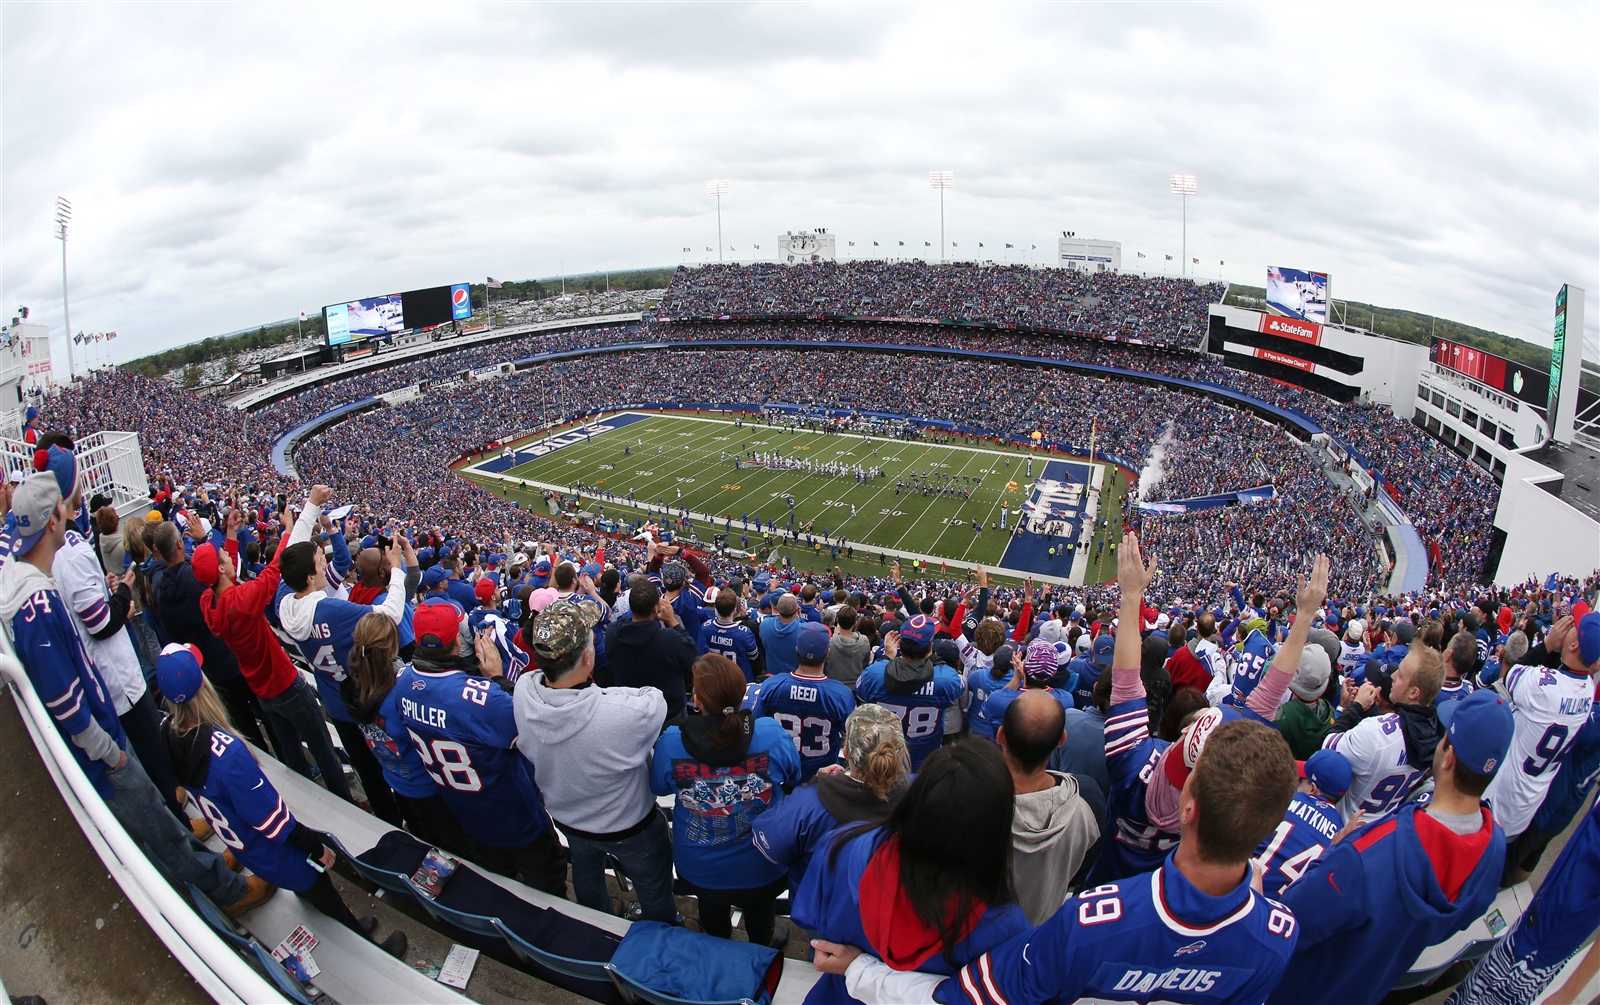 The view from the crowd at Ralph Wilson Stadium in the first quarter. (James P. McCoy/Buffalo News)